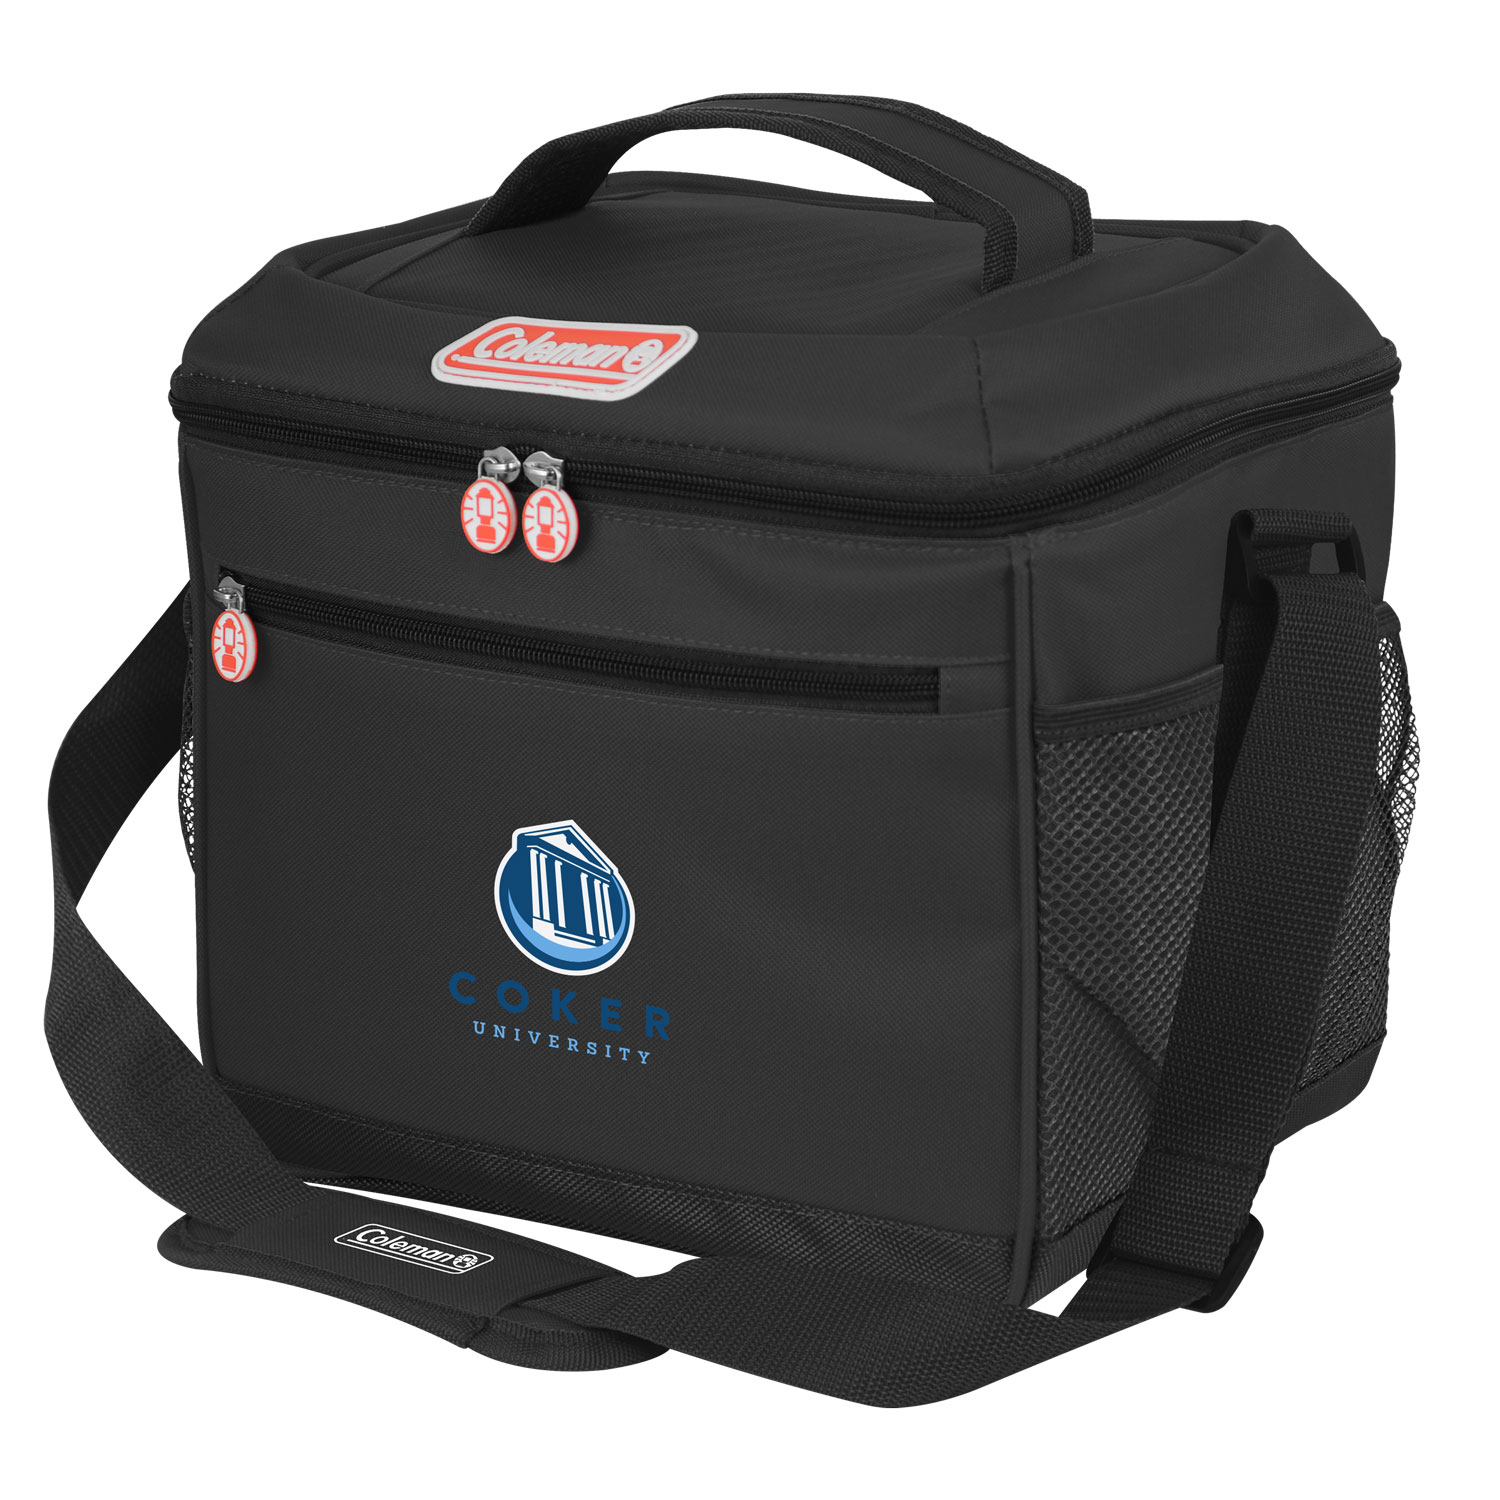 Image For Cooler COLEMAN 18 CAN COOLER